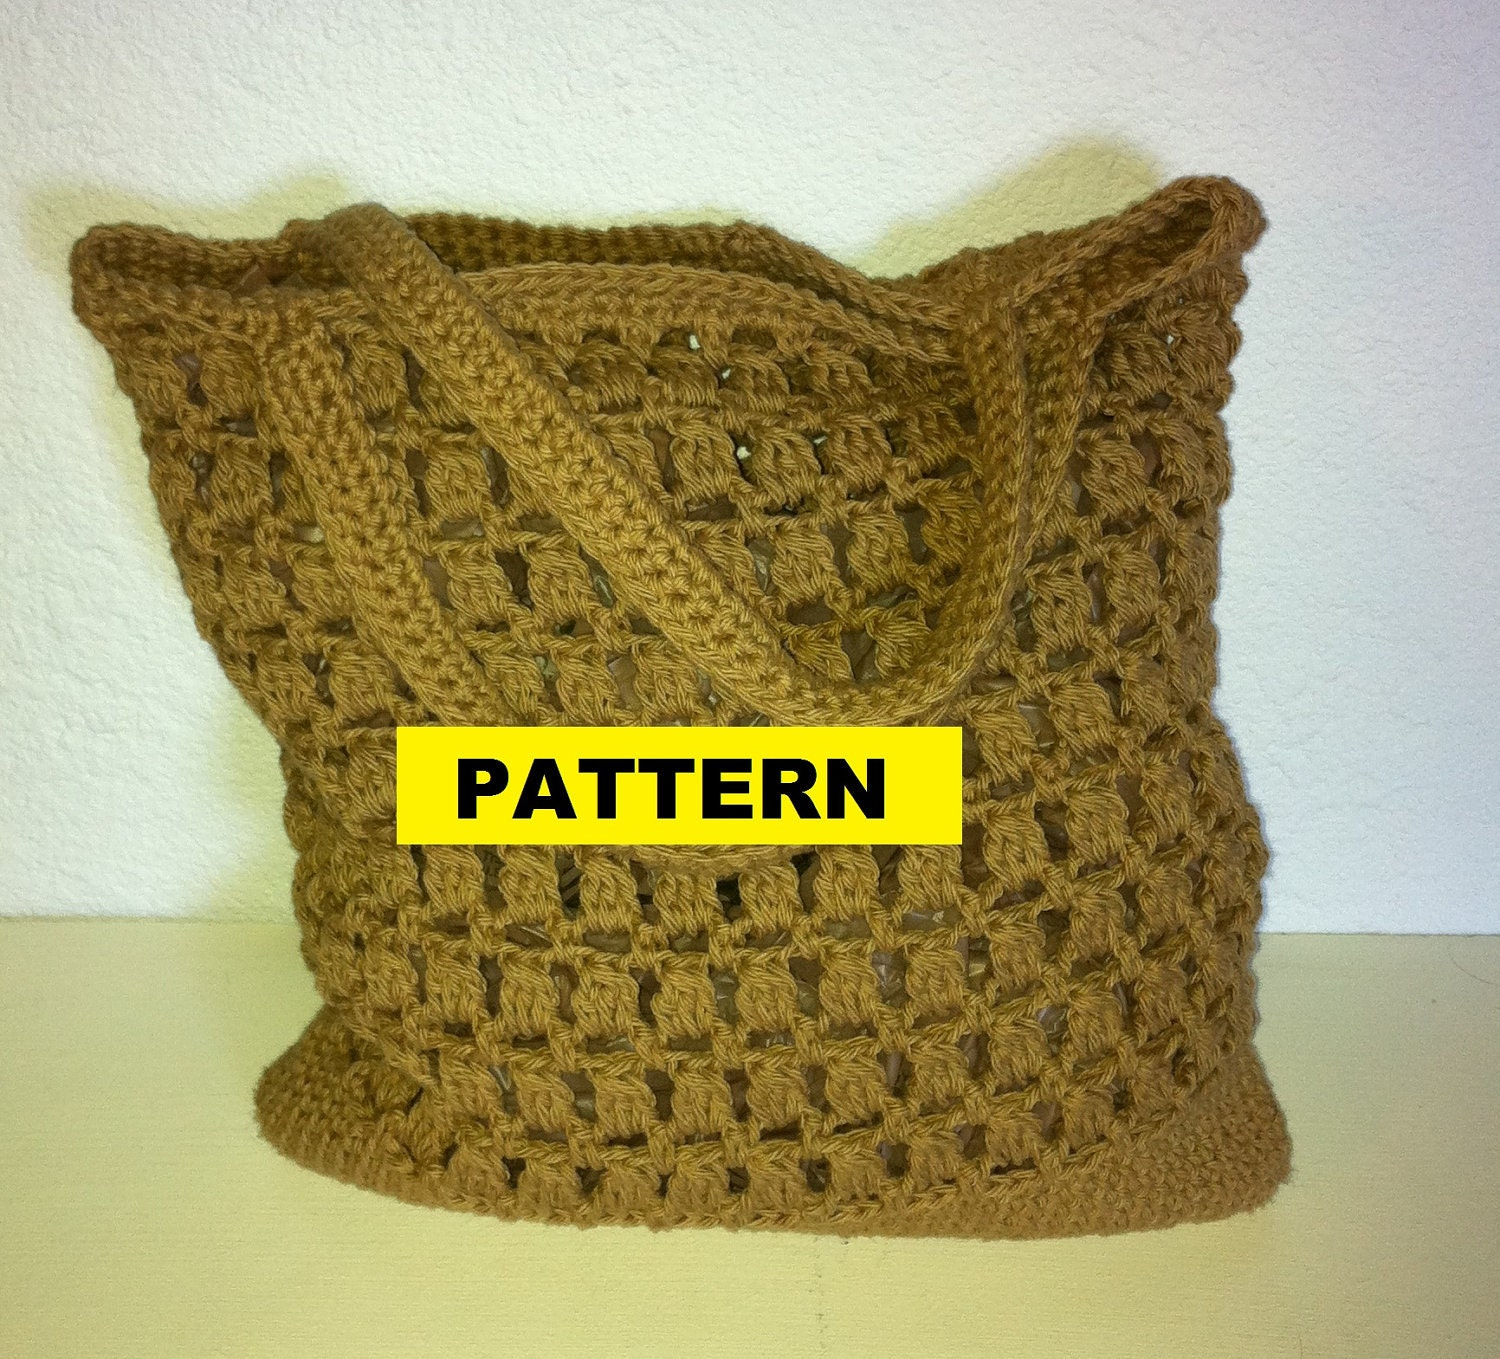 Crochet Pattern COTTON MARKET BAG by CROCHETBYMELISSA on Etsy